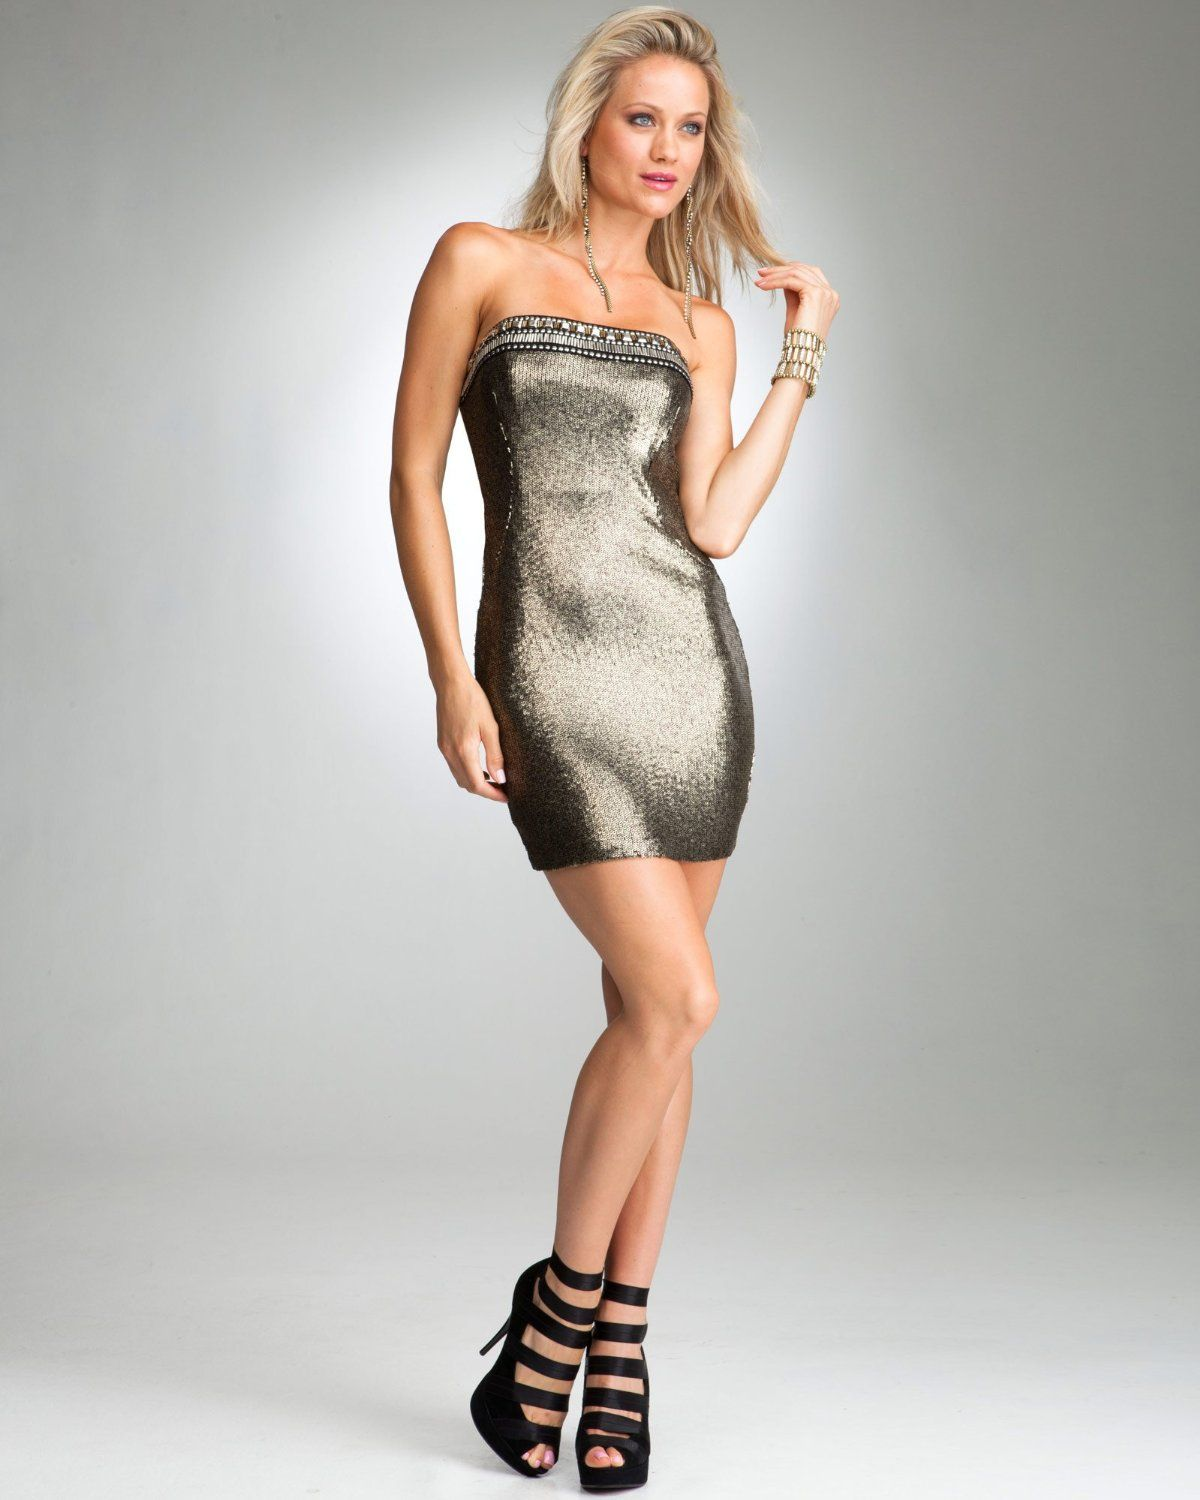 Armor sequin tube evening cocktail party club dress | All About ...